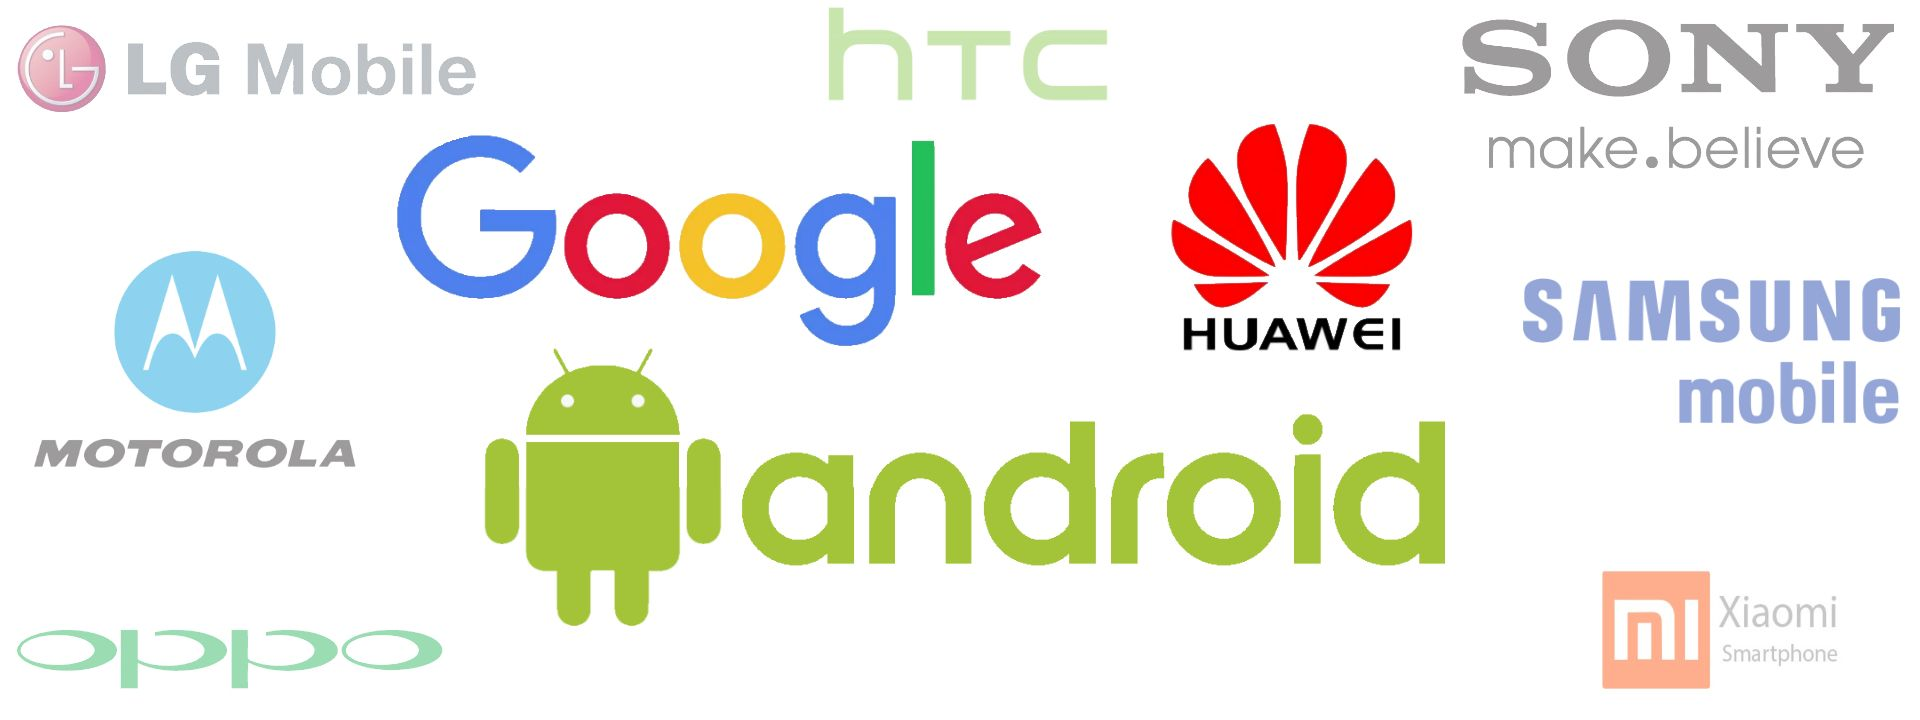 Huawei Ban and the Android trust problem The